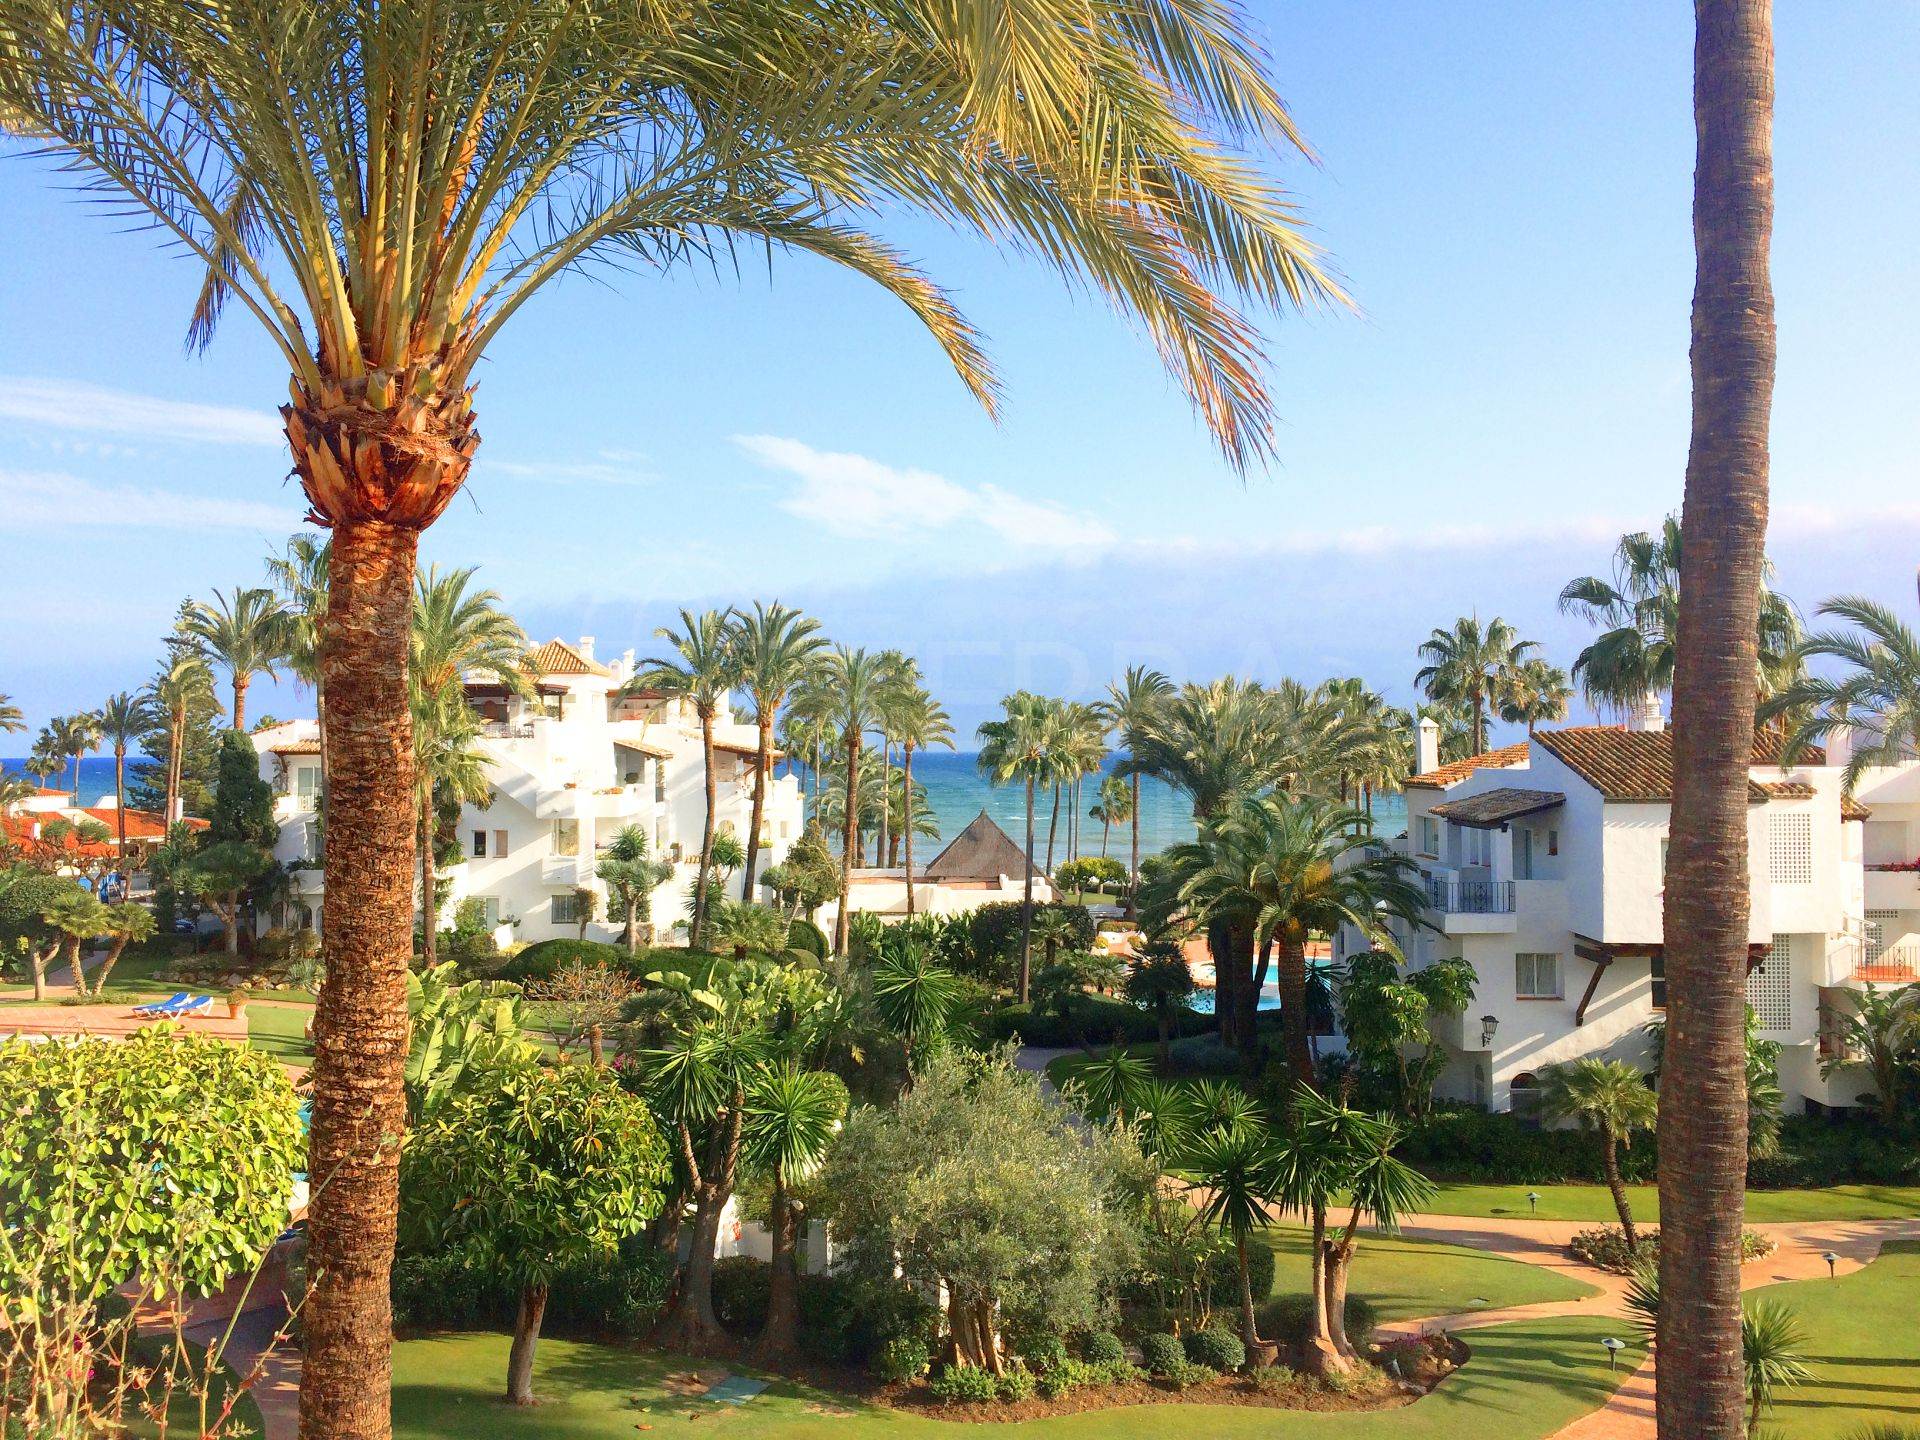 Stunning 3 bedroom penthouse apartment for sale in Alcazaba Beach, Estepona